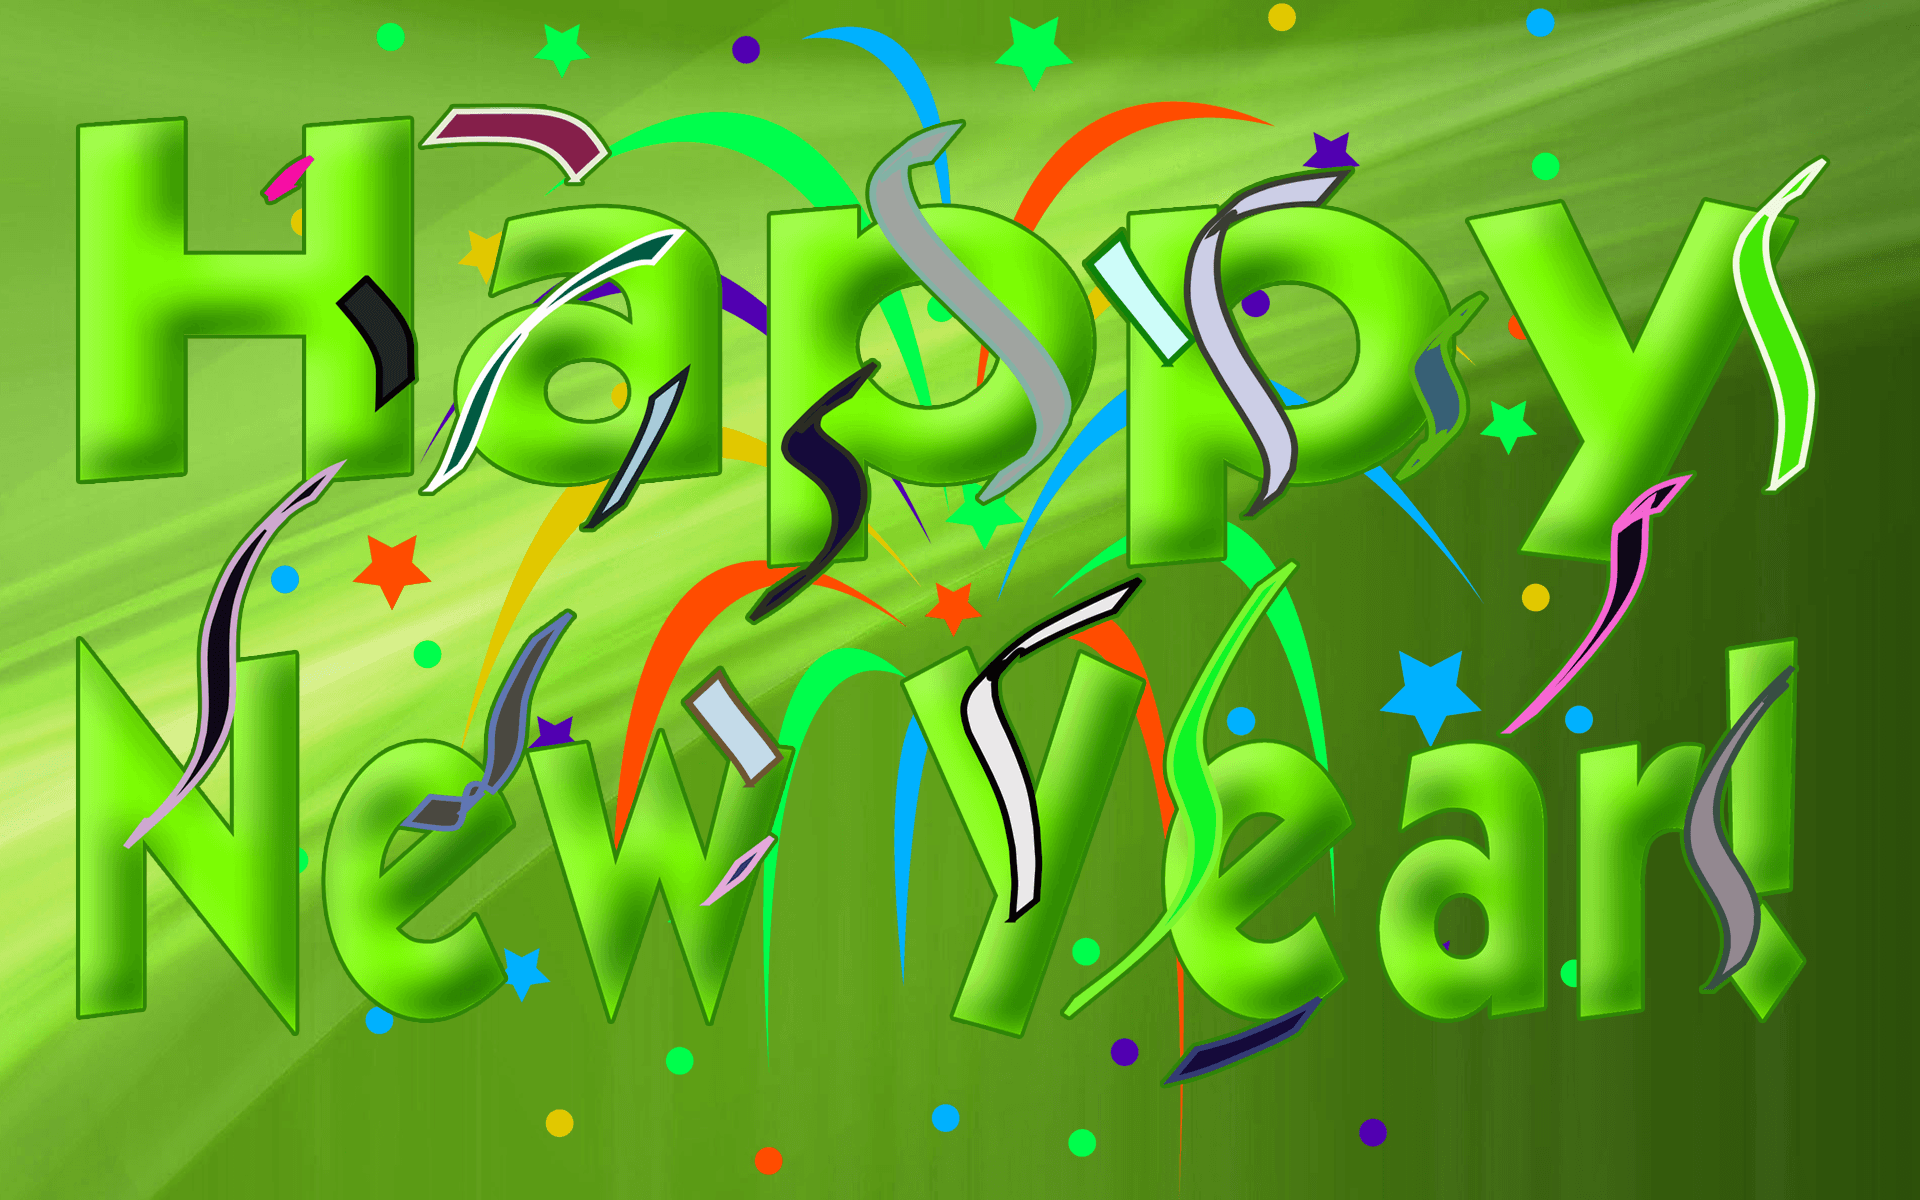 Wallpaper download hd 2017 - Happy New Year 2016 Wishes And Desktop Hd Wallpapers Download Free